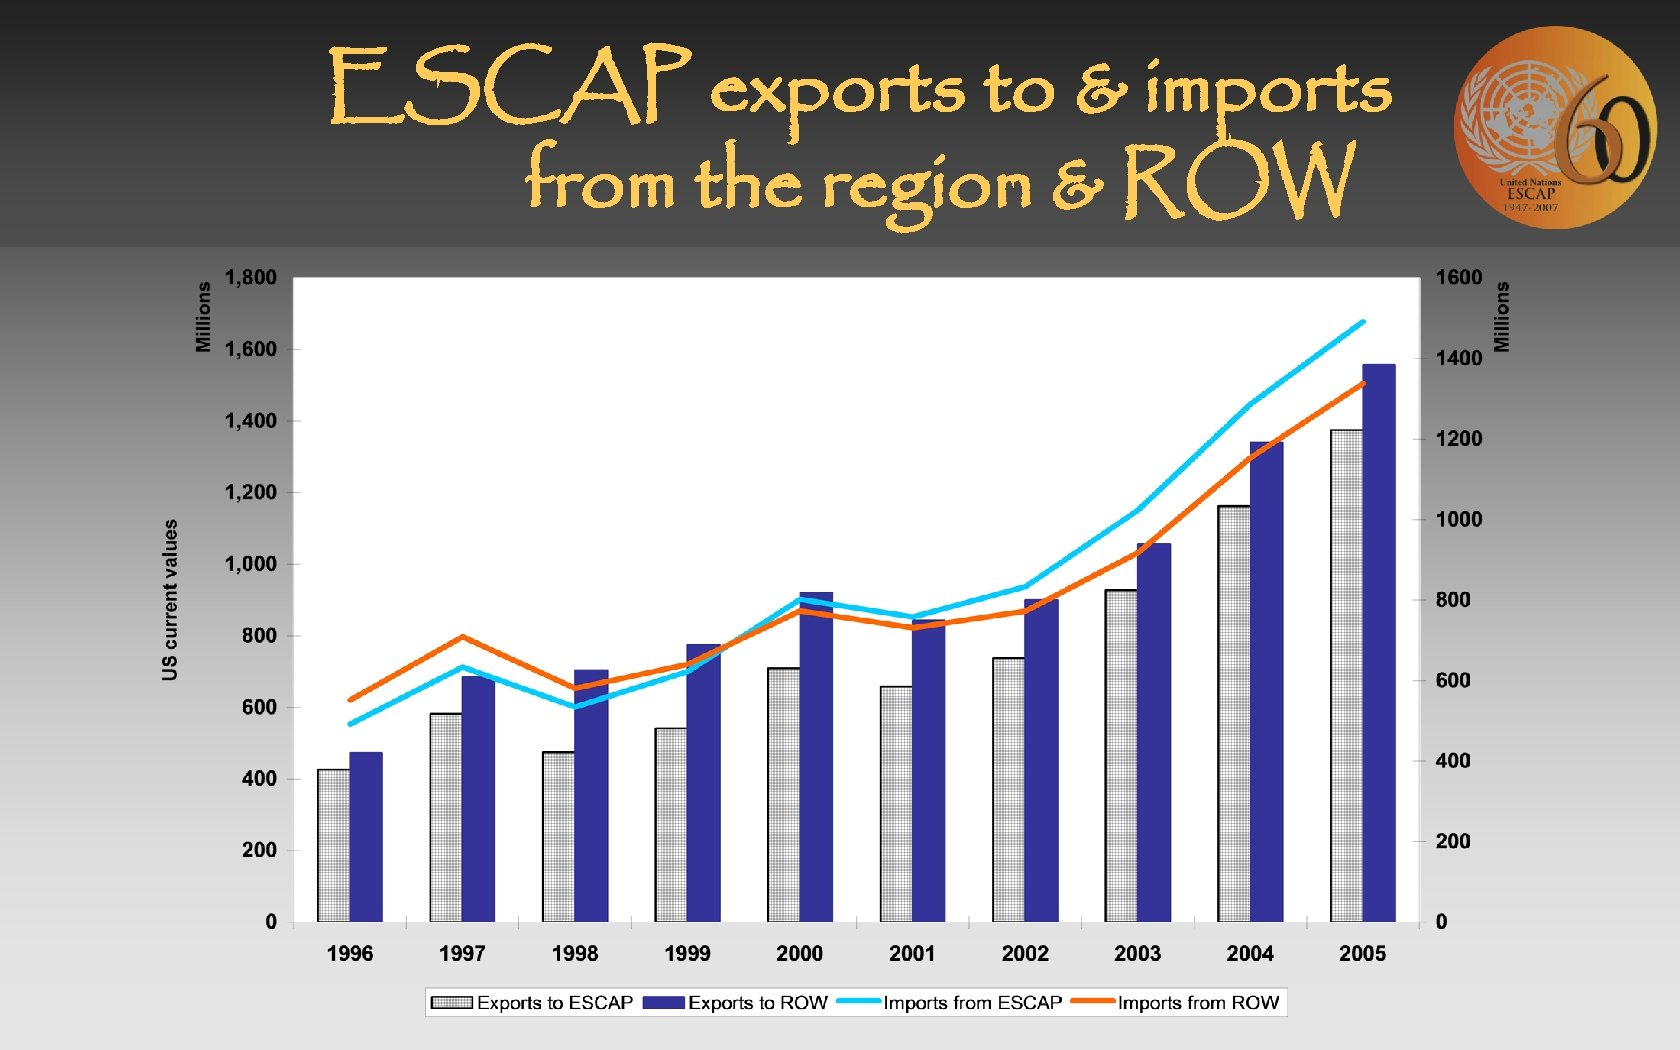 ESCAP exports to & imports from the region & ROW